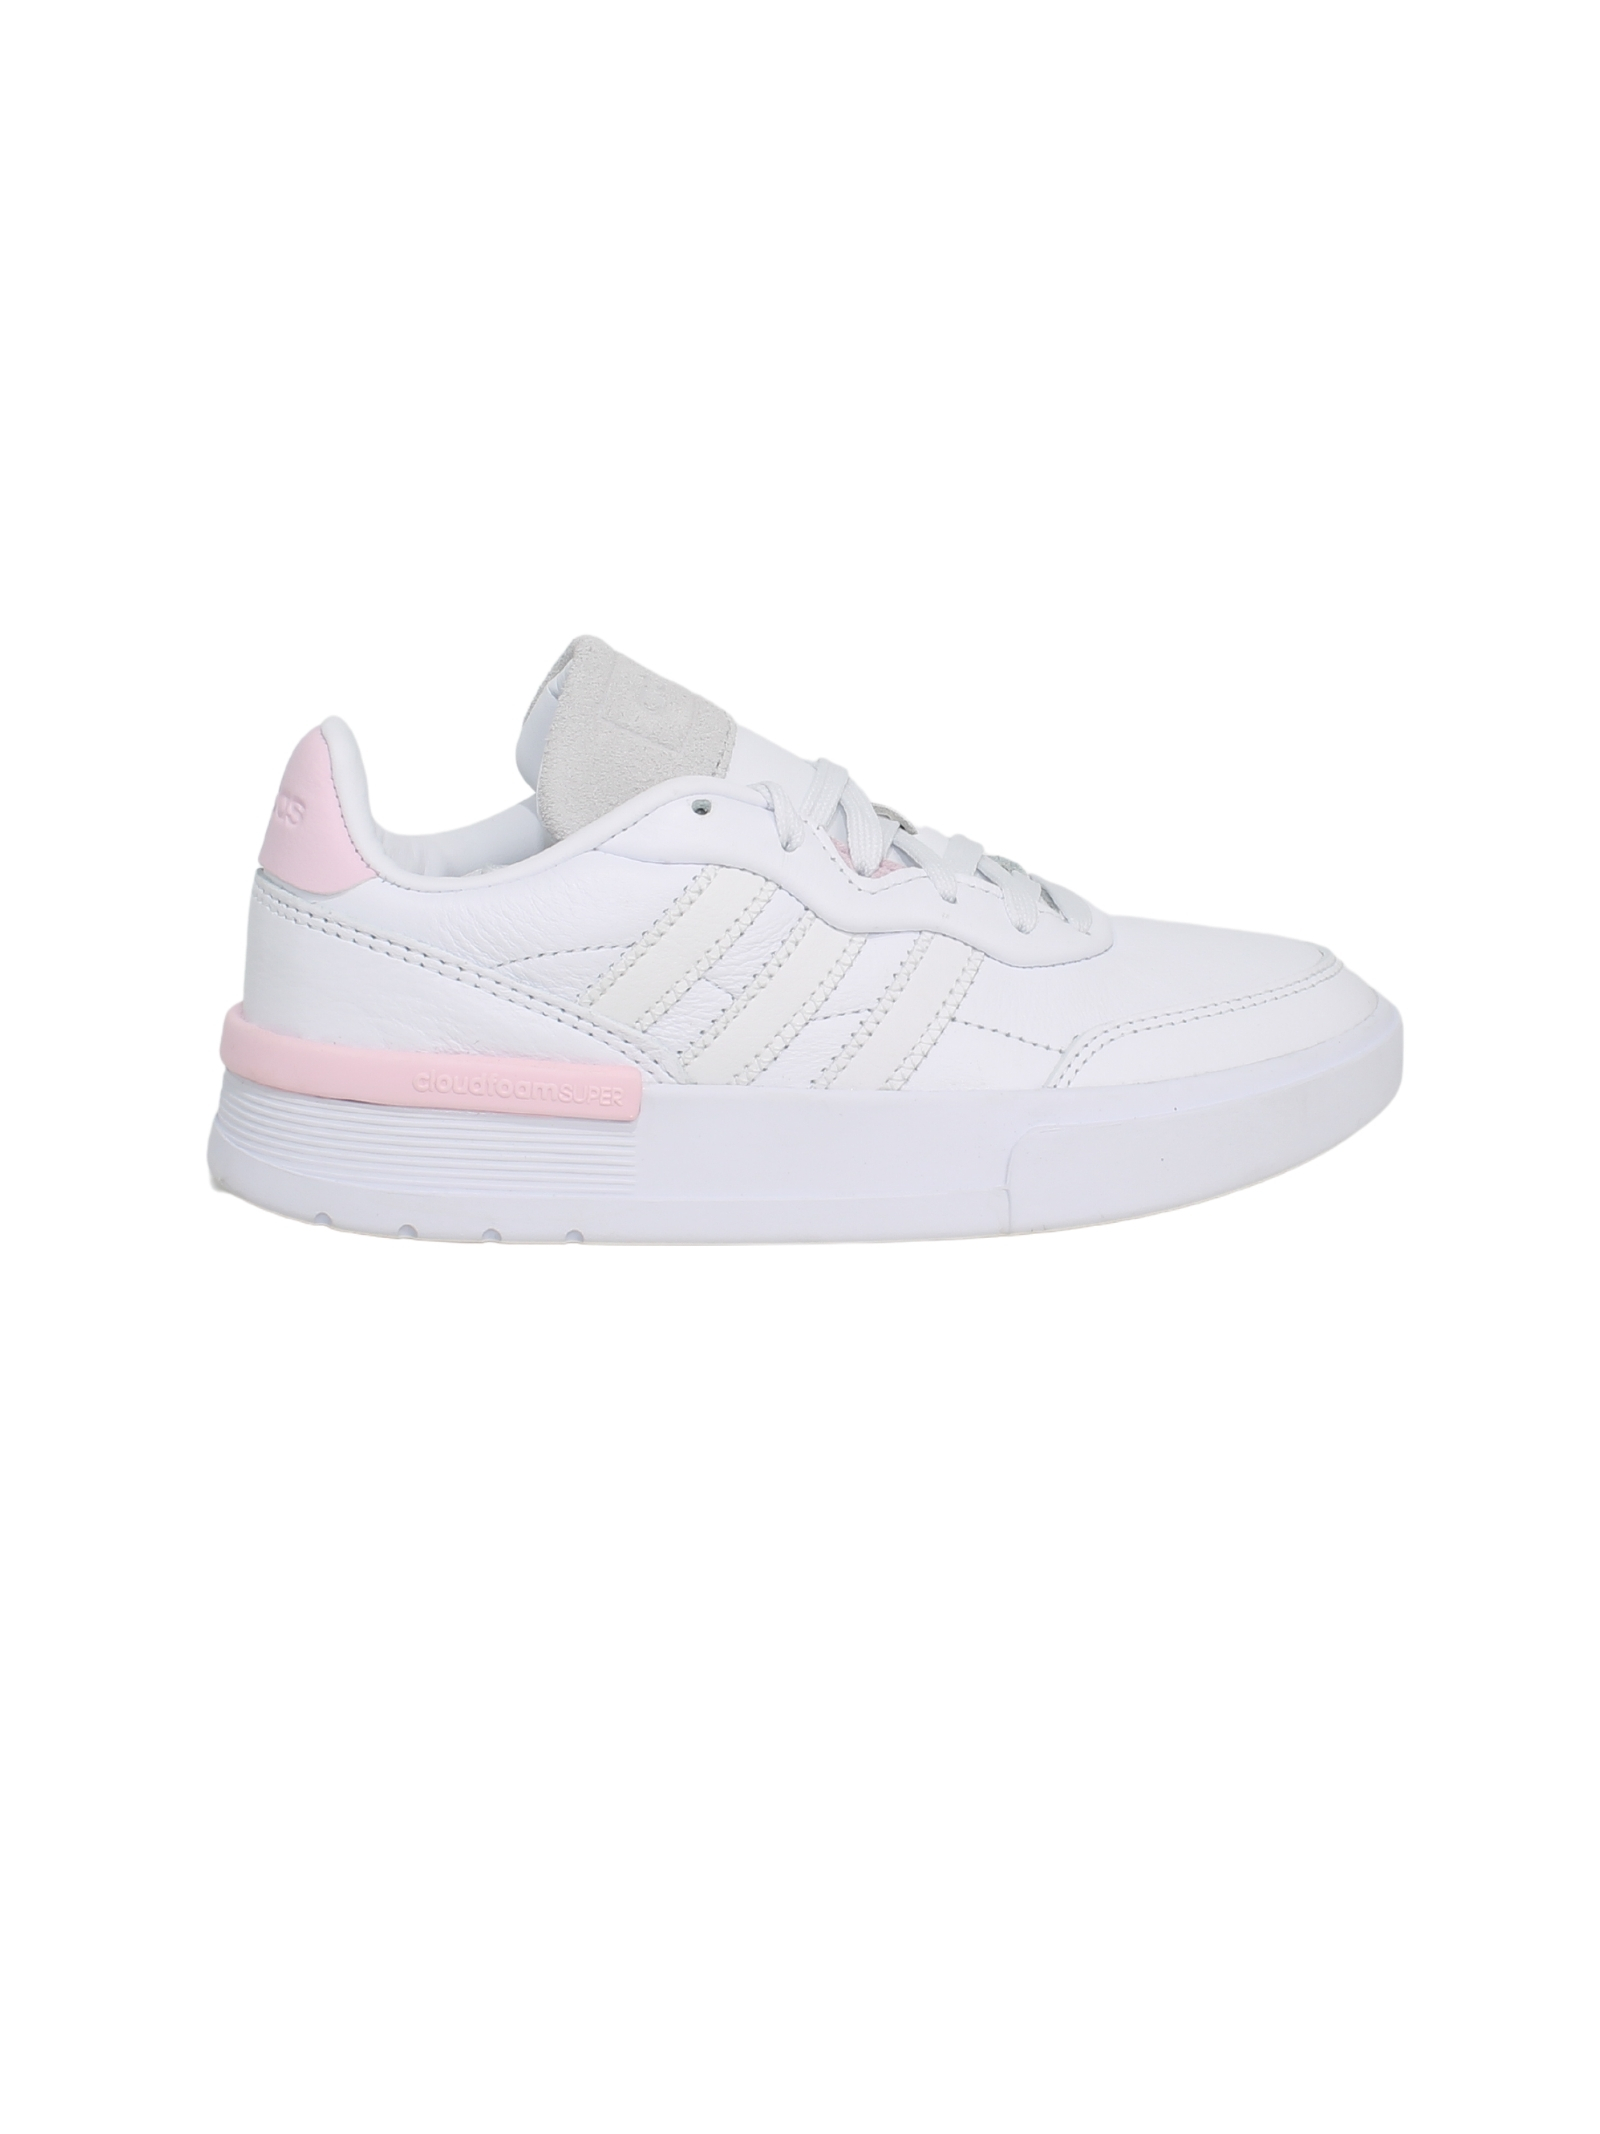 Sneakers Clubcourt Bambina ADIDAS JUNIOR | Sneakers | H68717WHITE PINK